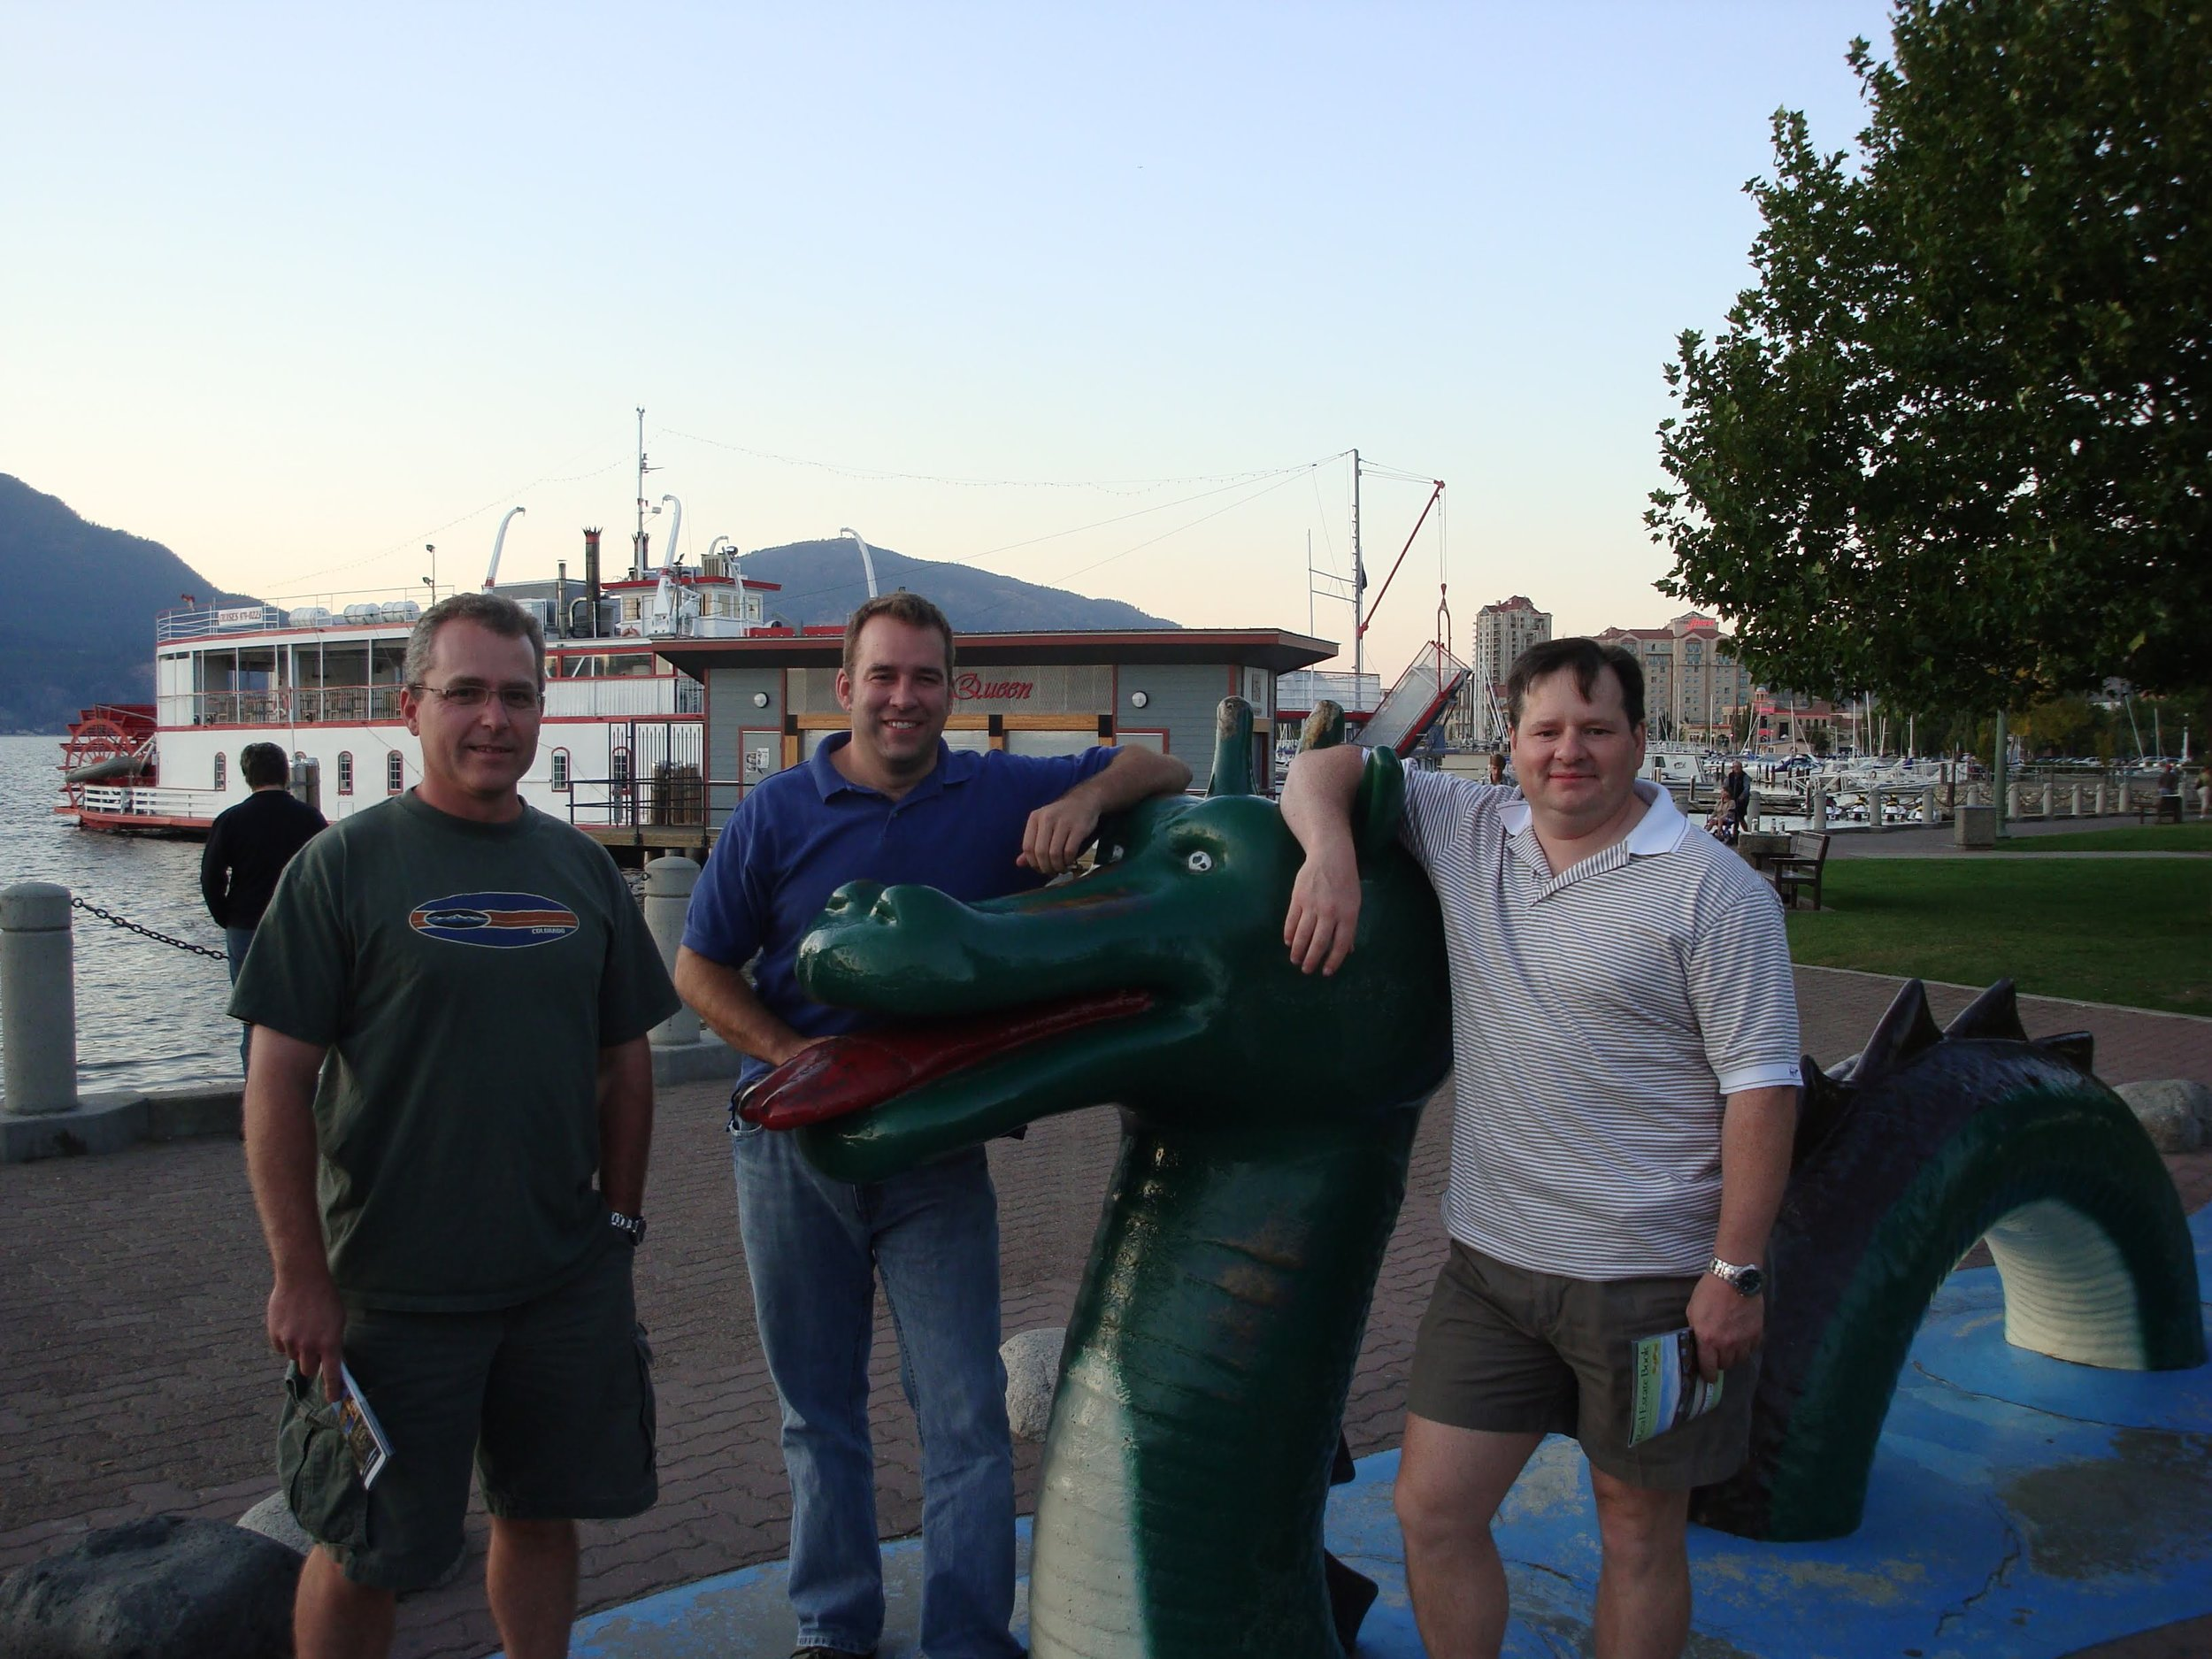 Kevin, Chris, and Ken with the Kelowna Ogopogo. Fun fact: ReconInsight's Data Monster was inspired by the Ogopogo, Kelowna's own mythical lake monster!